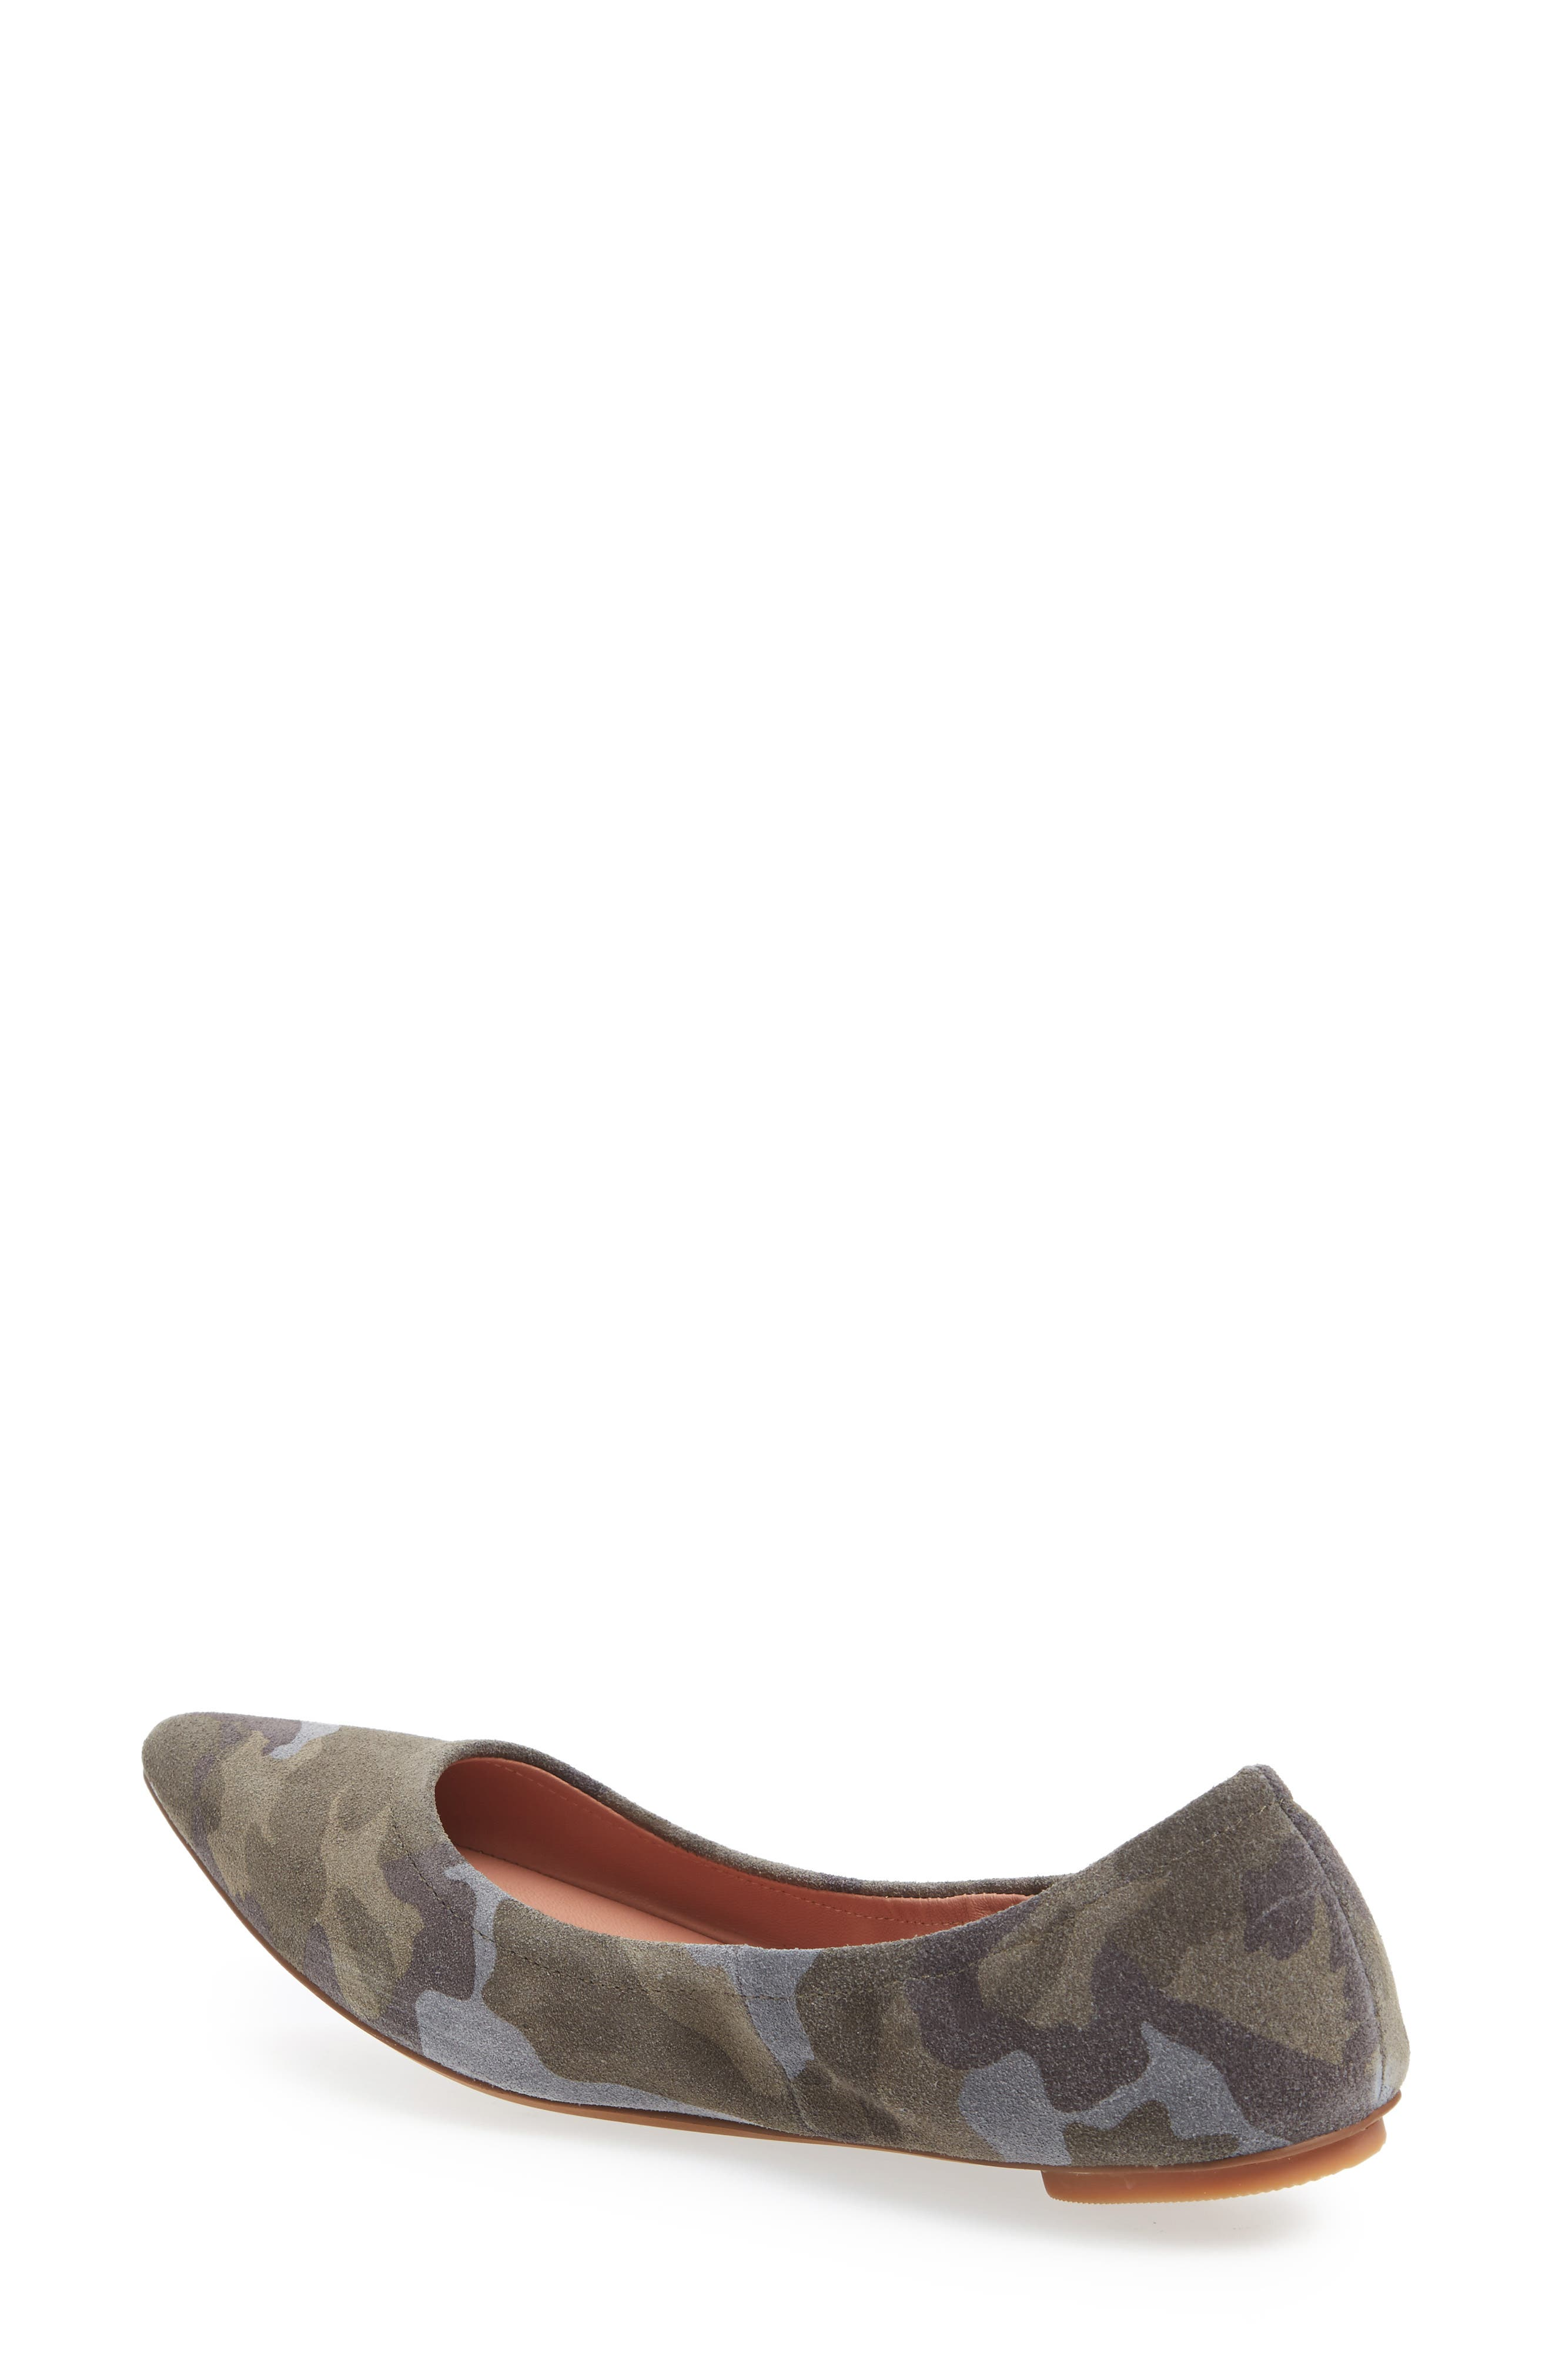 Nico Pointy Toe Flat,                             Alternate thumbnail 2, color,                             Camouflage Suede